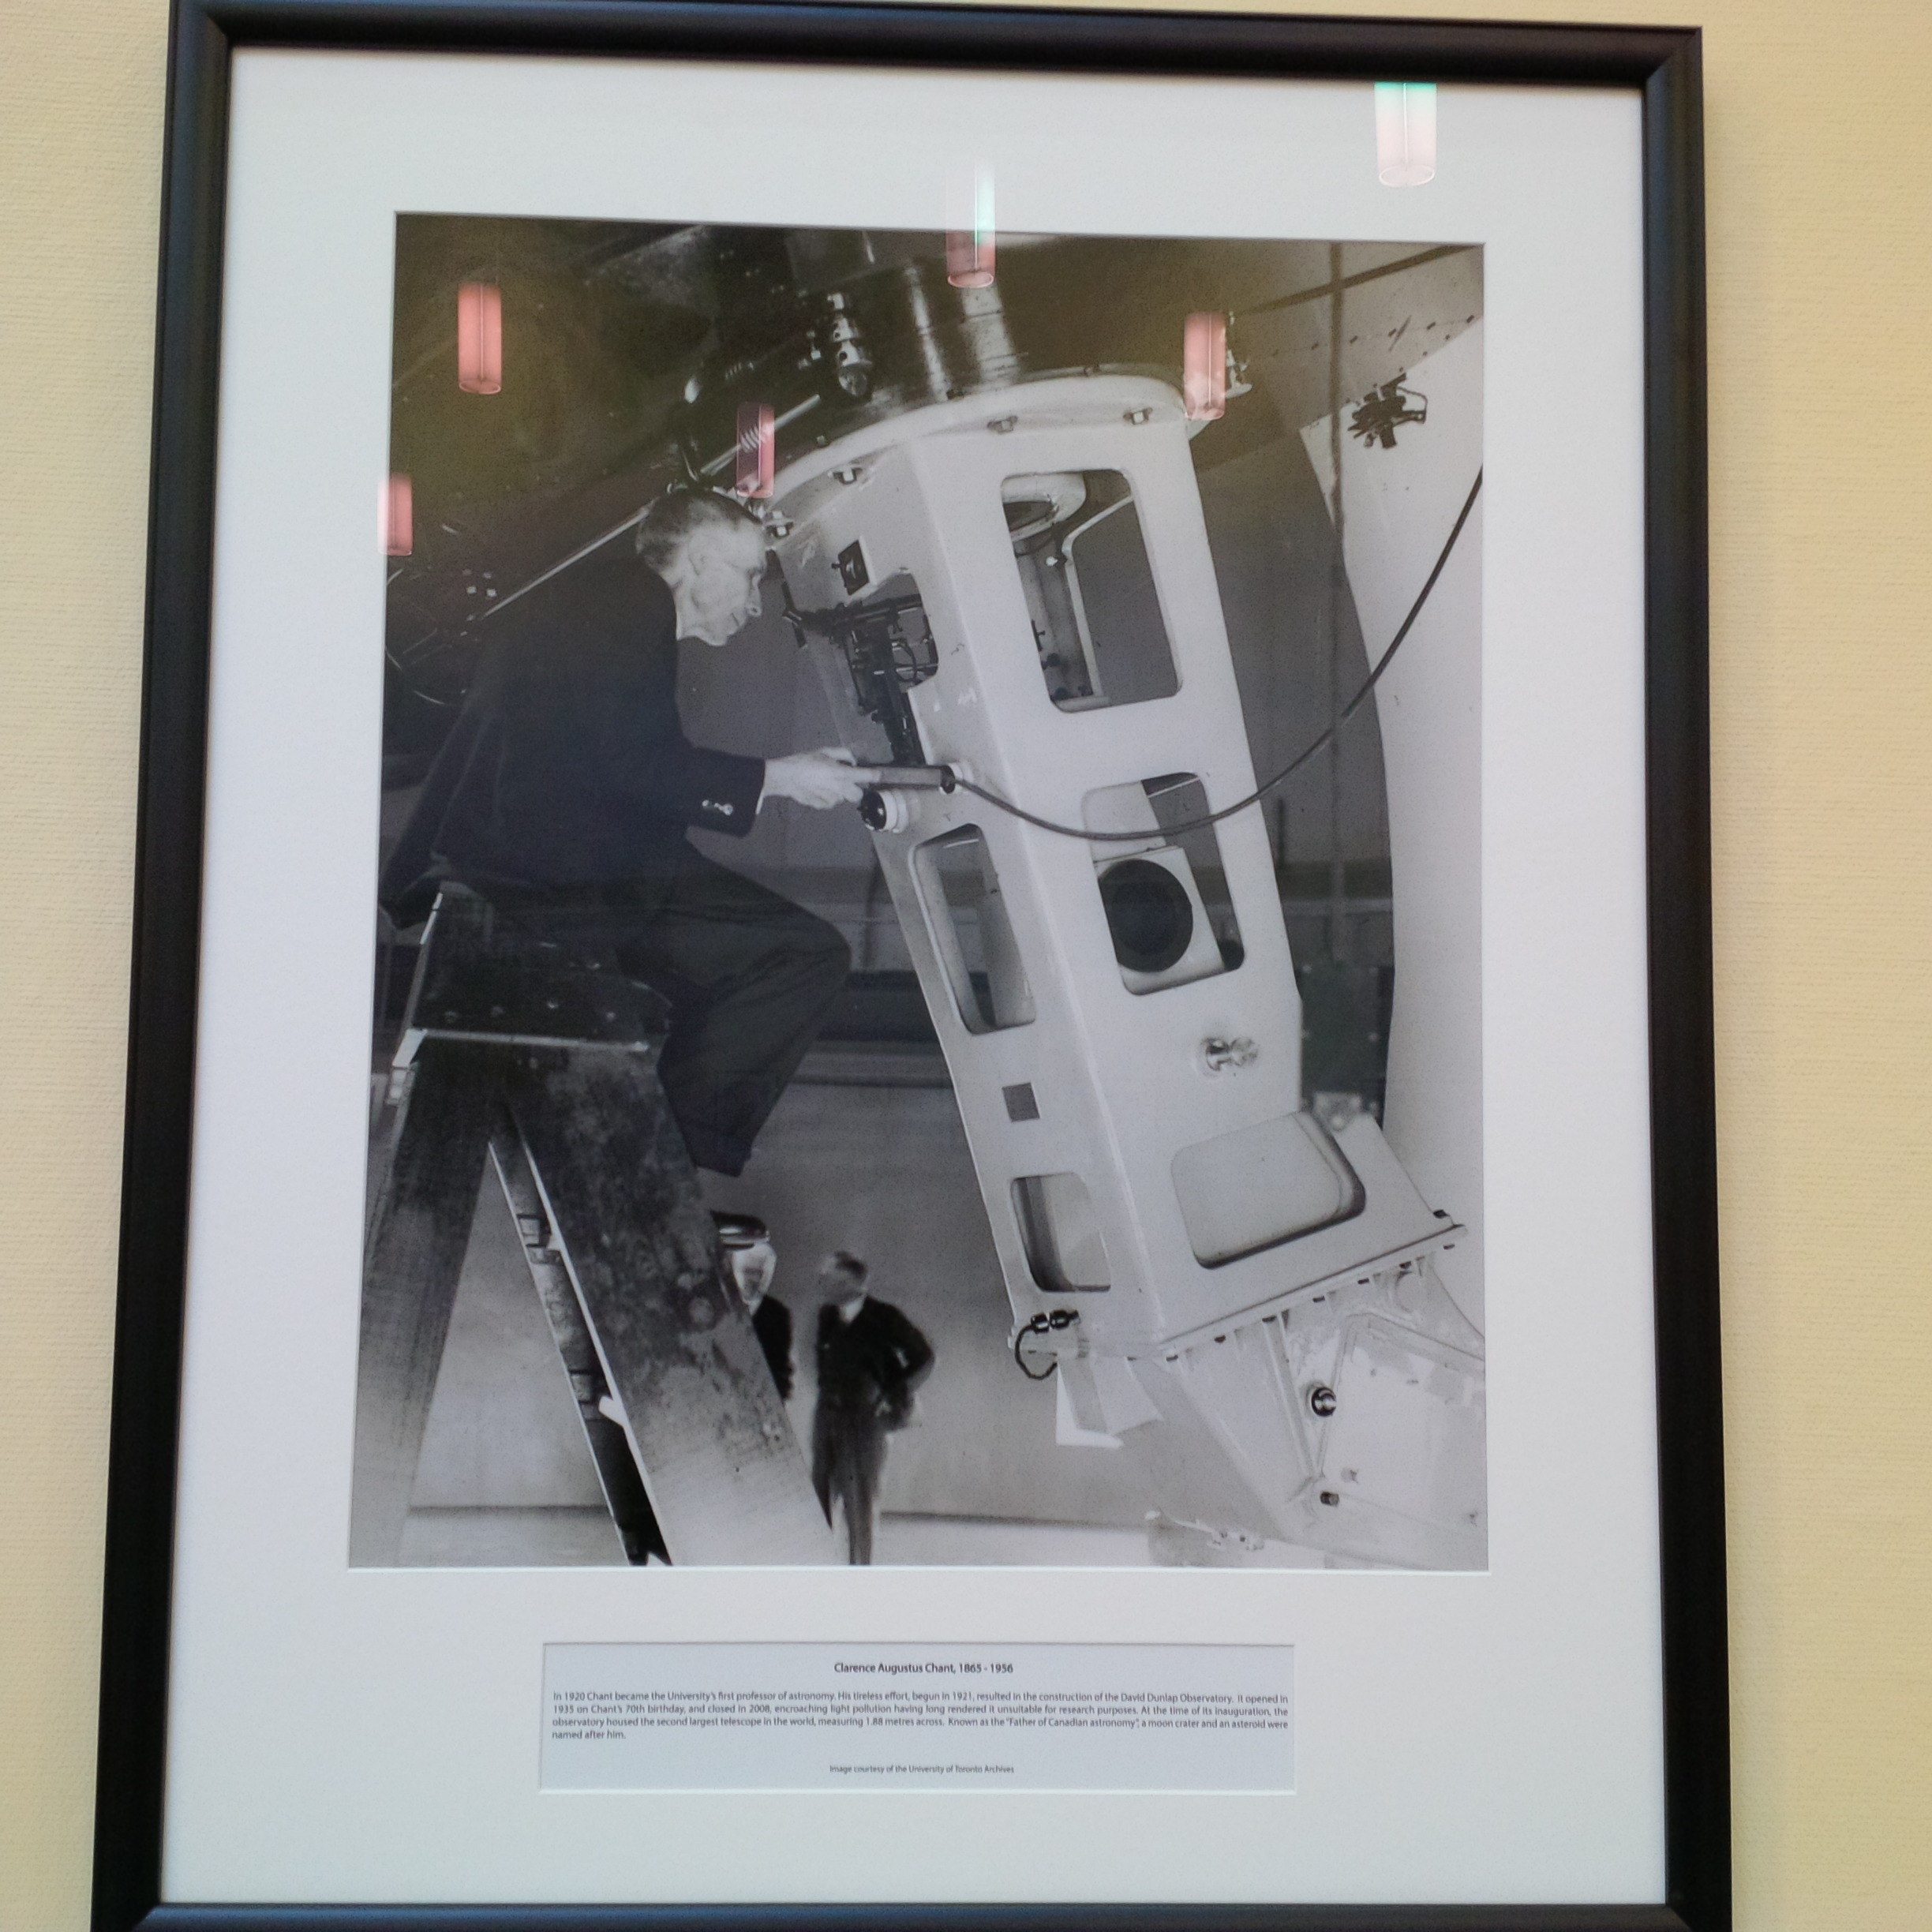 Black and white framed picture of man at telescope, sitting on ladder - two men are in the background